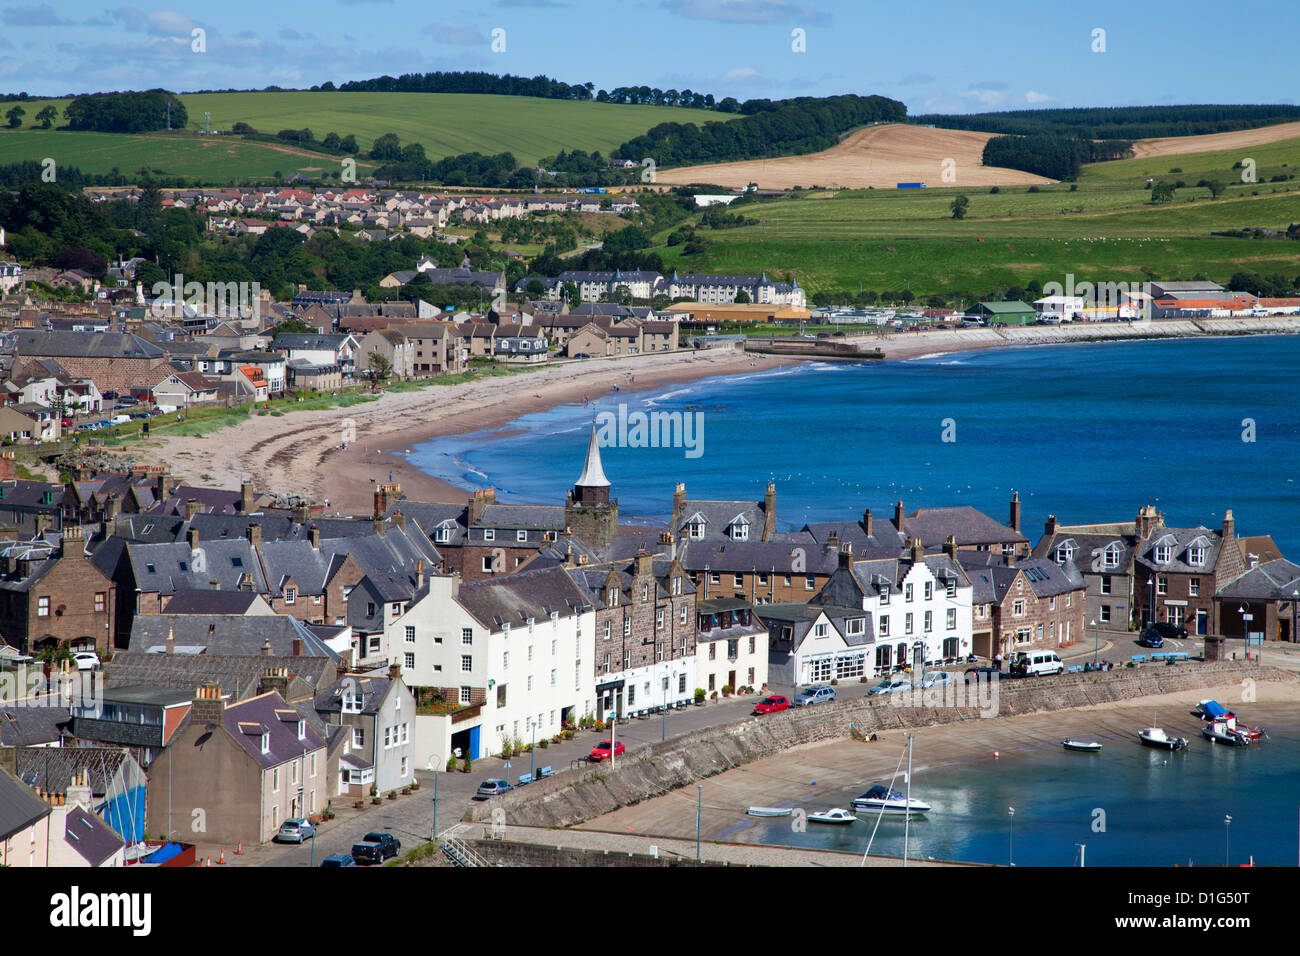 Stonehaven Bay and Quayside from Harbour View, Stonehaven, Aberdeenshire, Scotland, United Kingdom, Europe - Stock Image